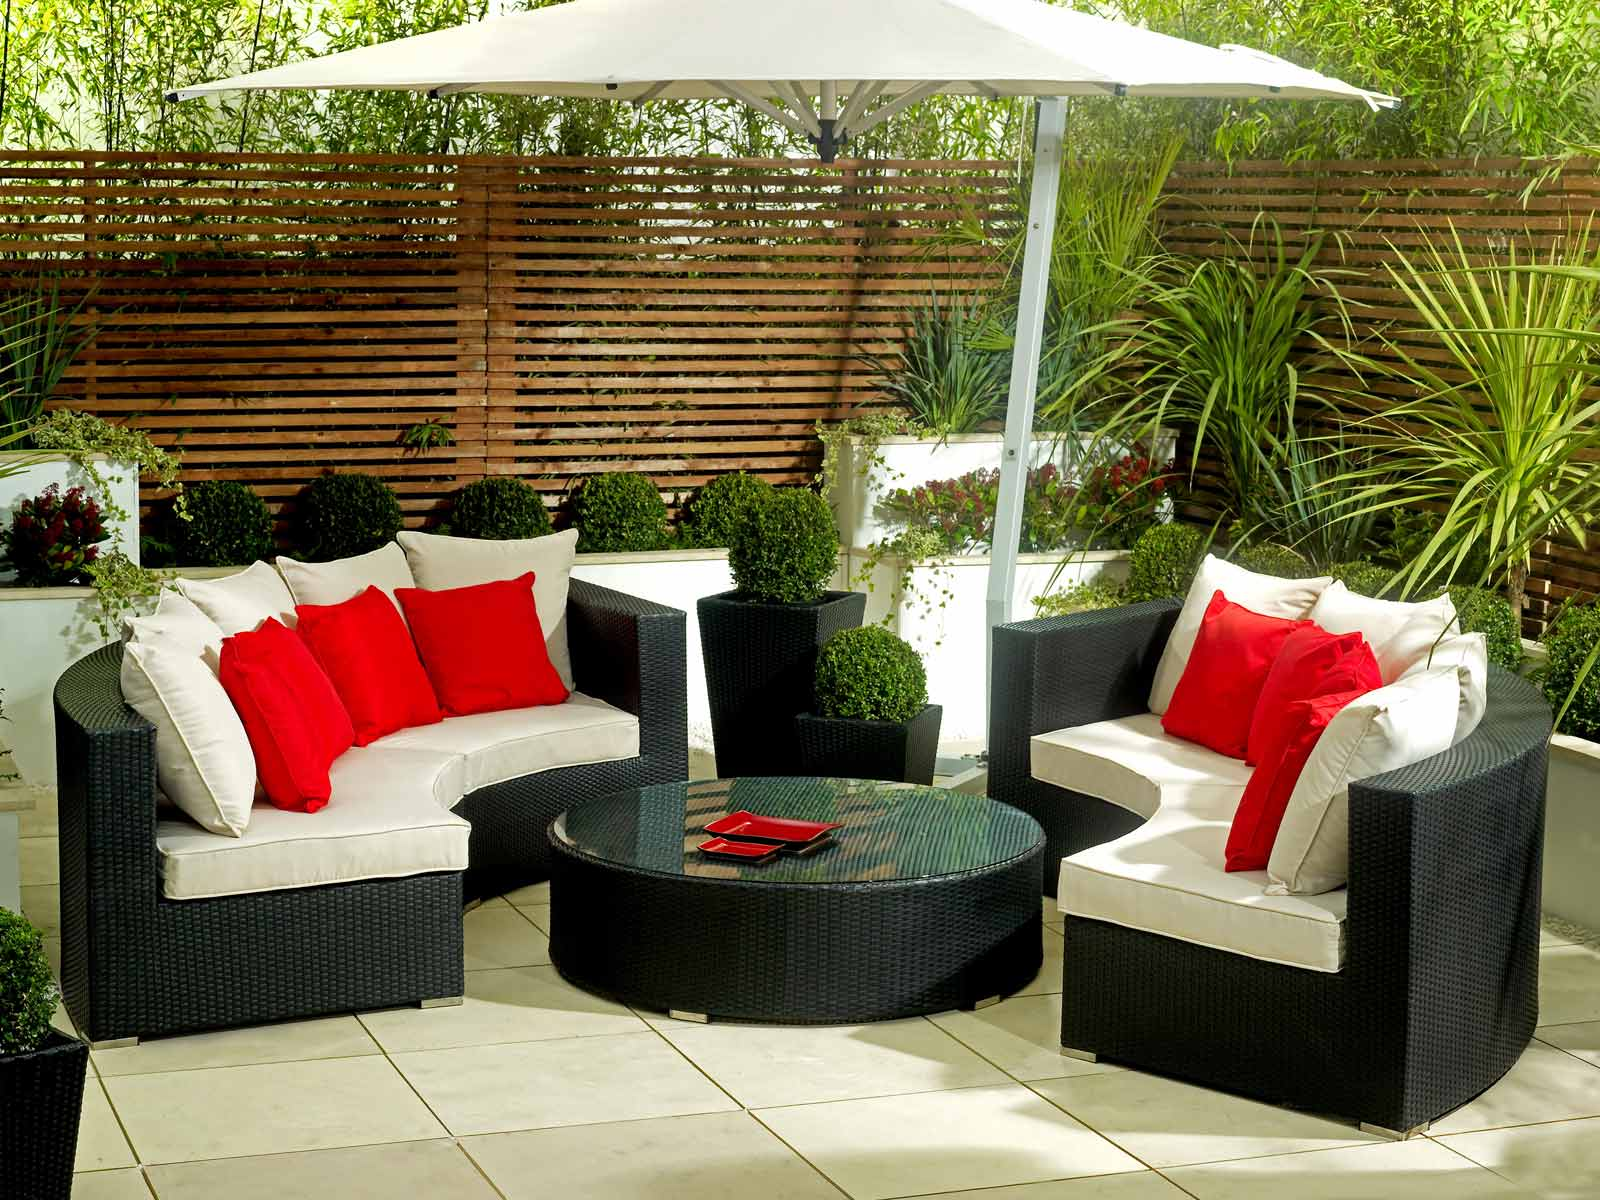 Garden Furniture 4 U Ltd unique garden furniture 4 u patio s for design ideas